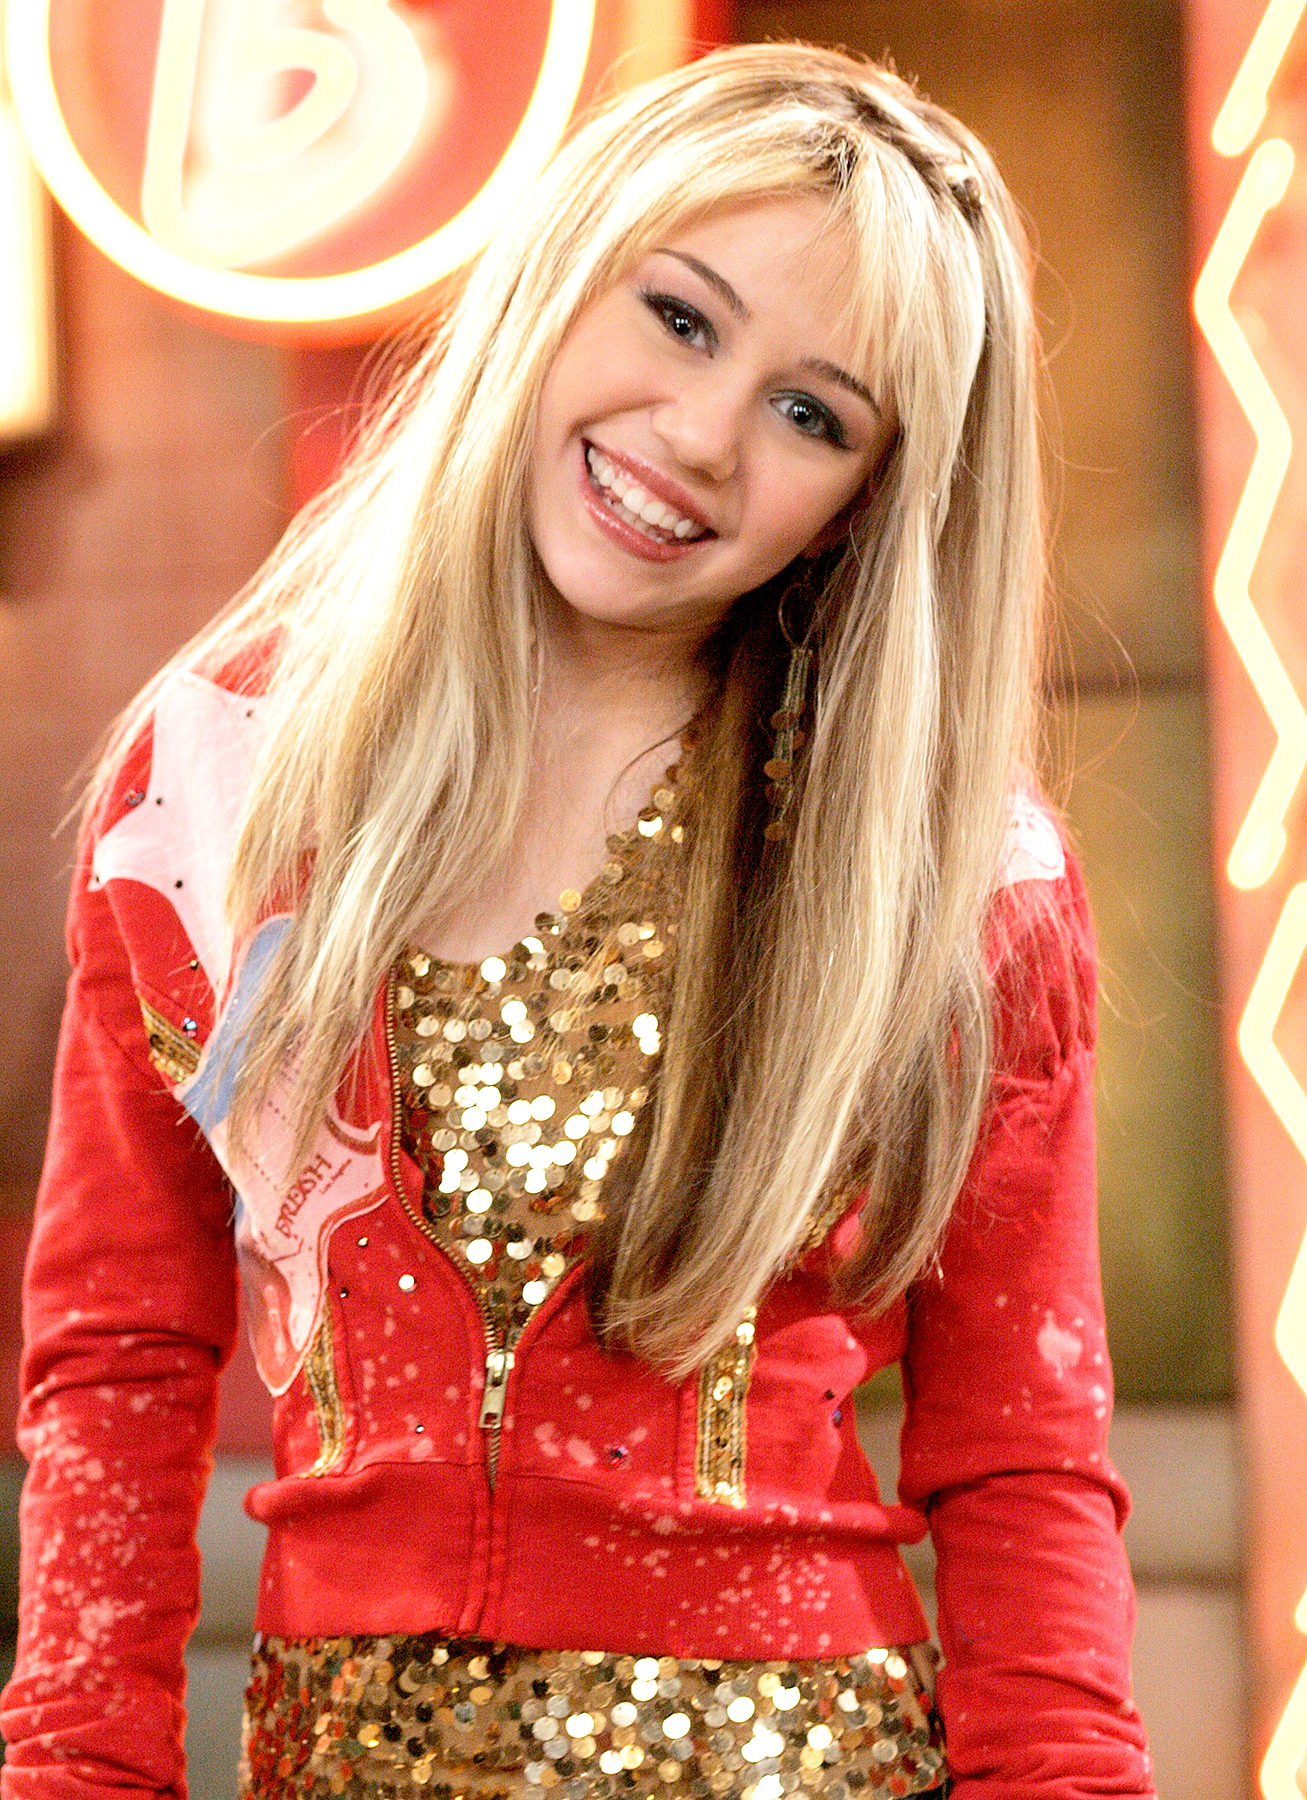 miley-cyrus-hannah-montana-2006 - Best of both worlds!